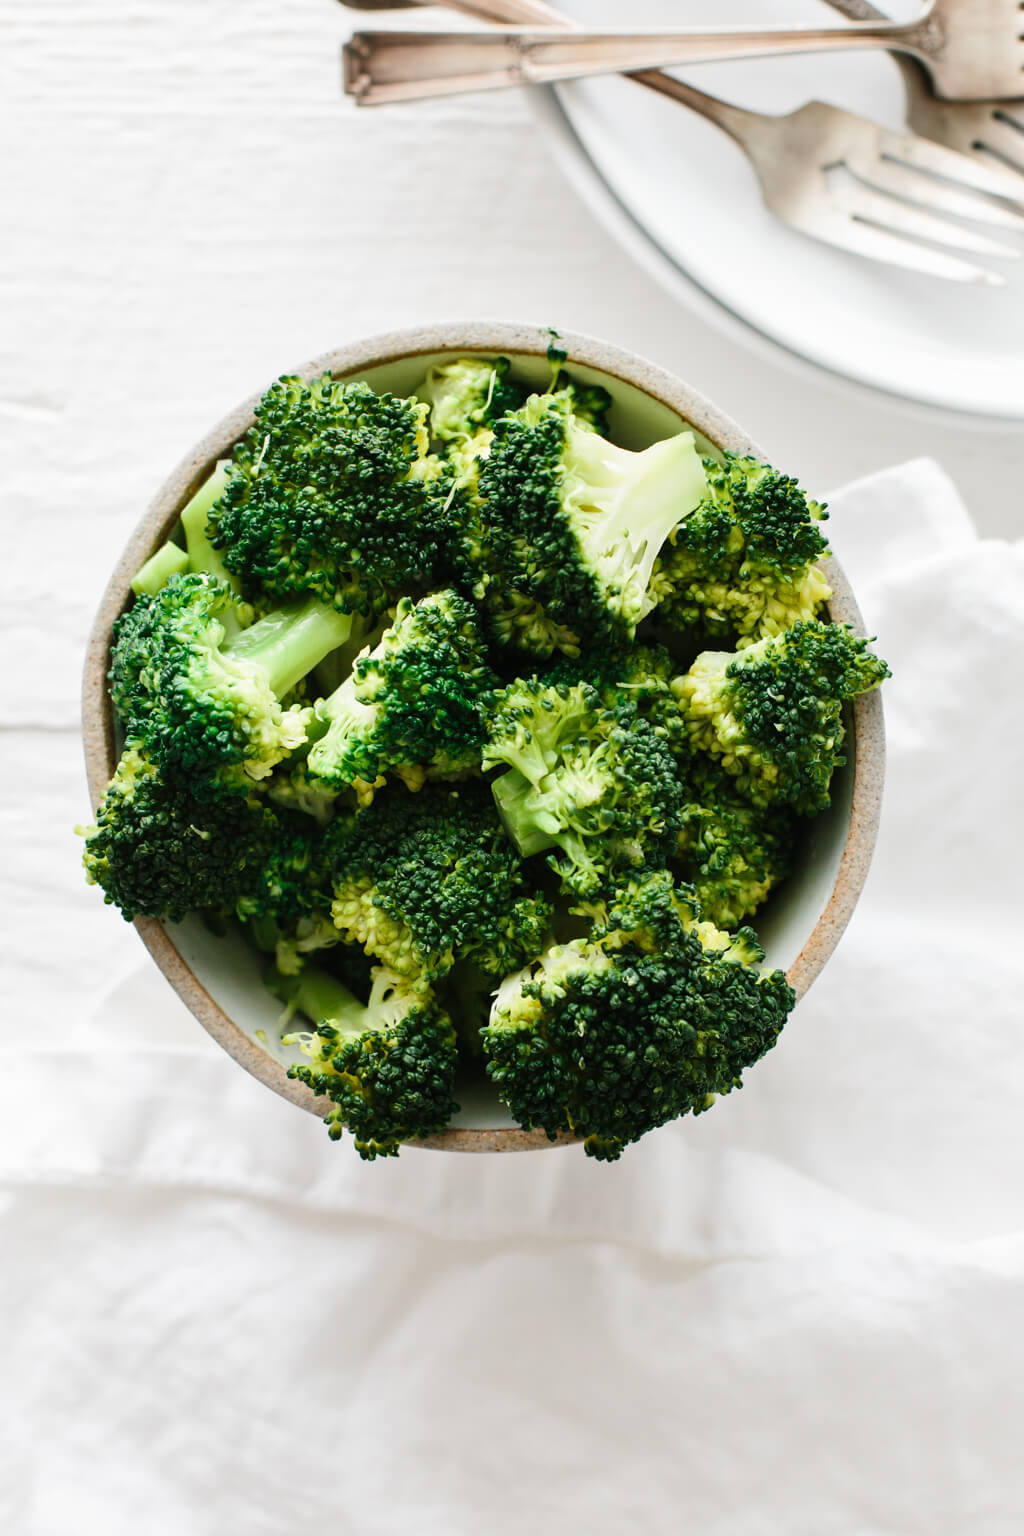 Top down view of steamed broccoli in a grey bowl on a white background.